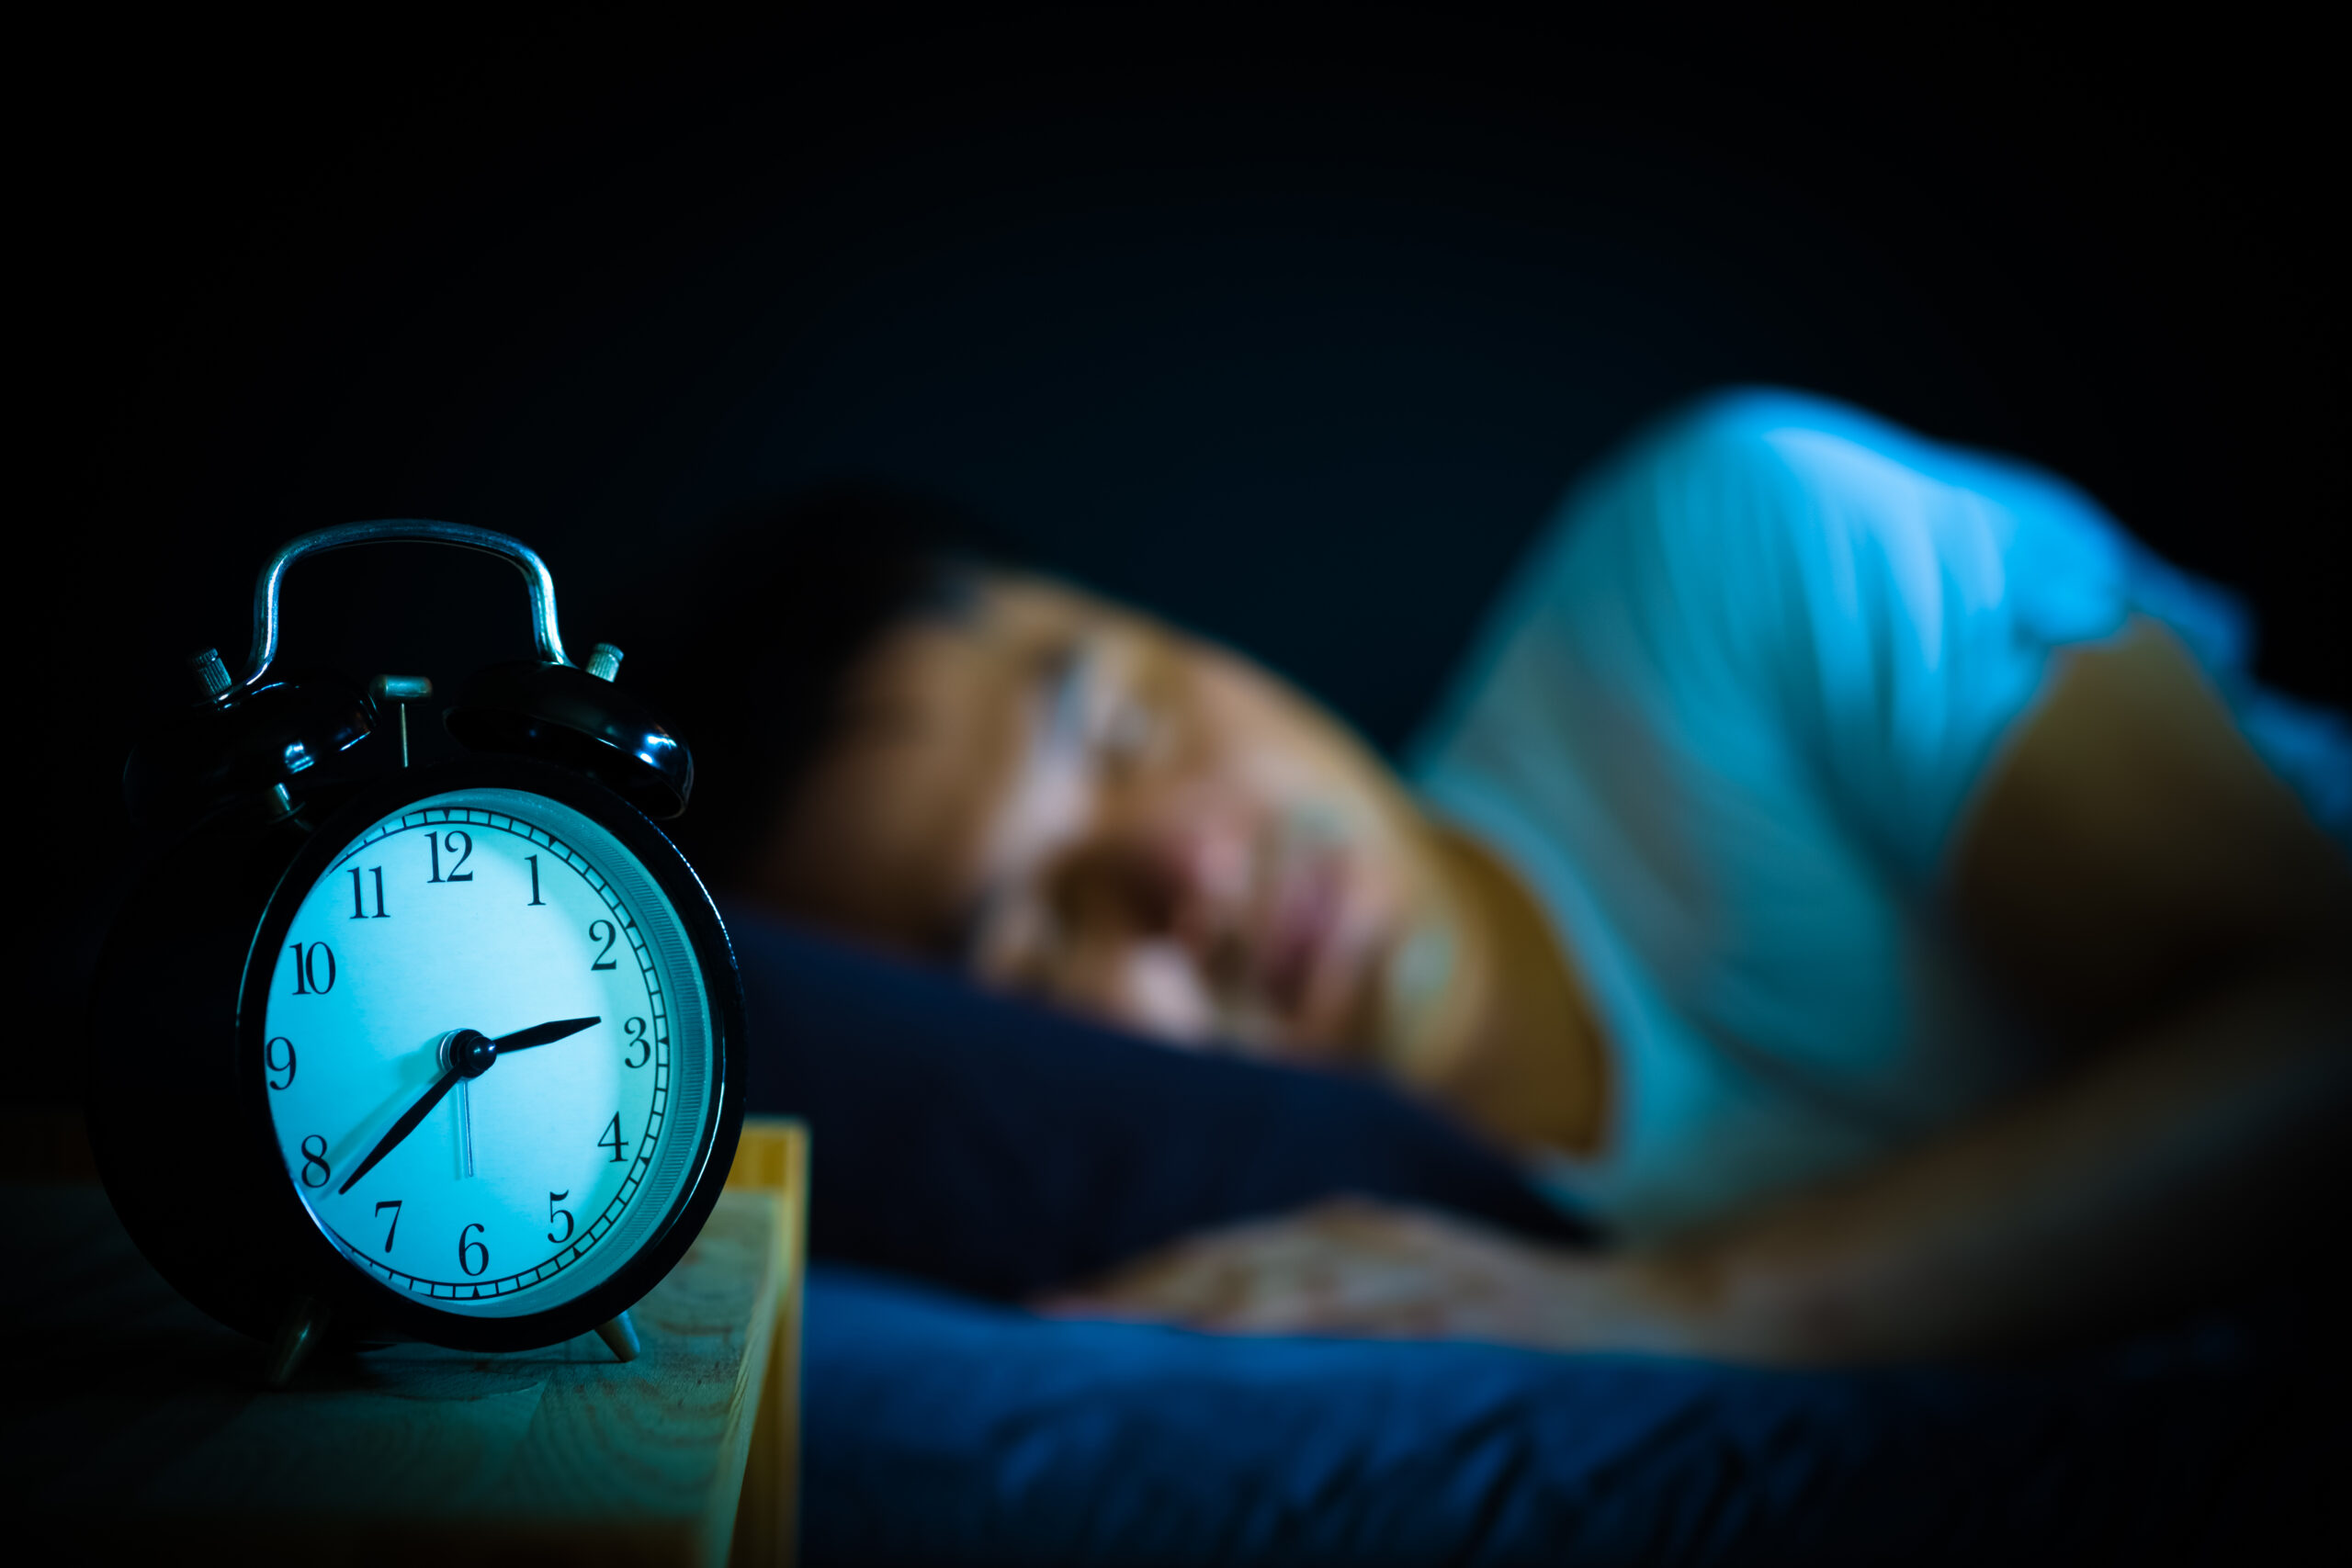 man sleeping in a bed at night with an alarm clock in the foreground showing the time as three am